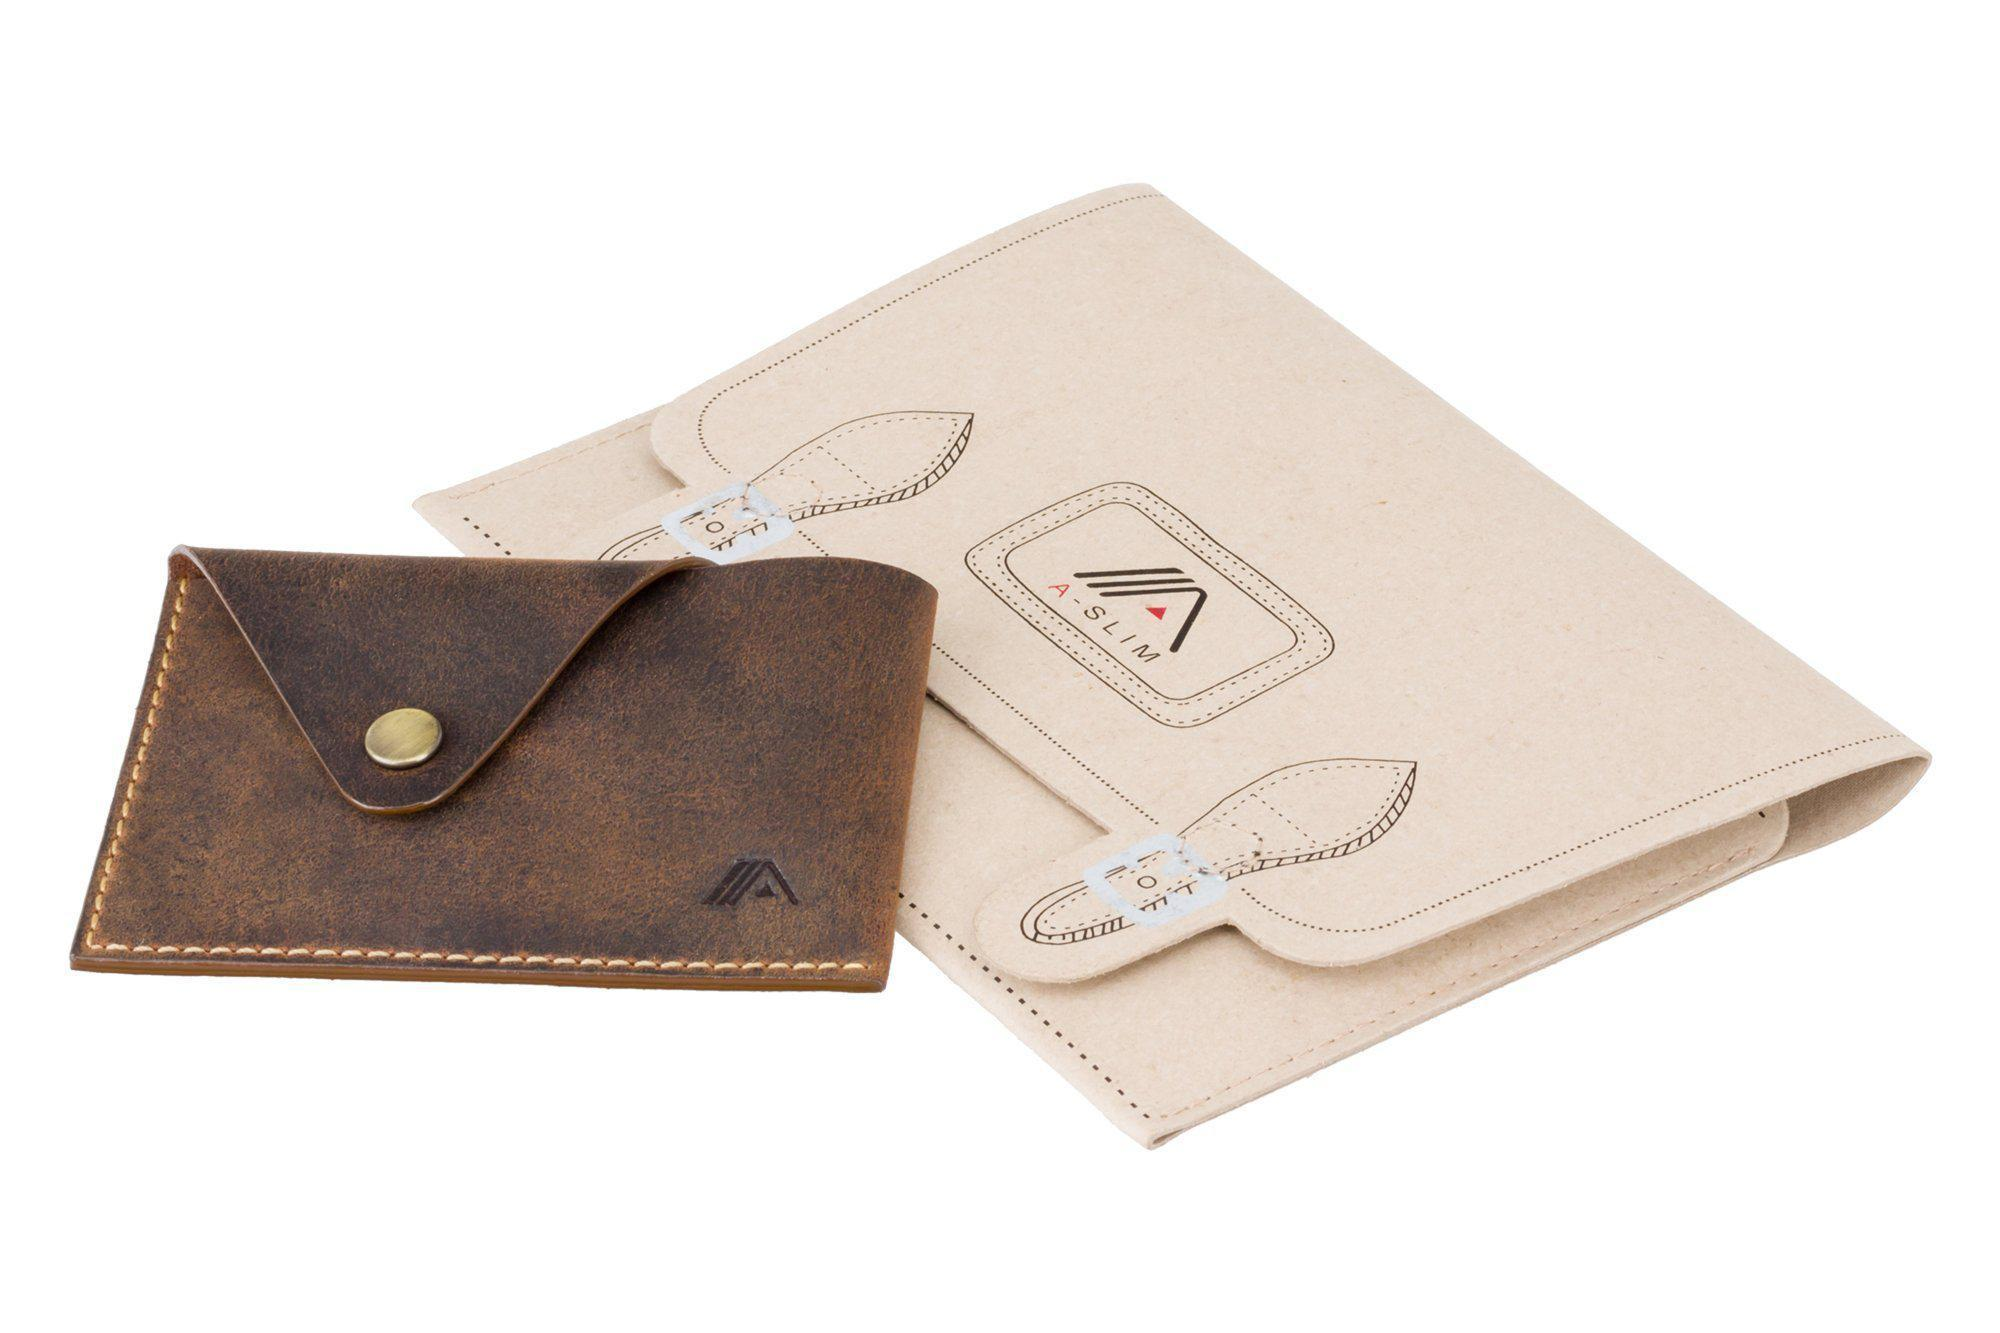 Wallet Business Card Holder Images - Free Business Cards